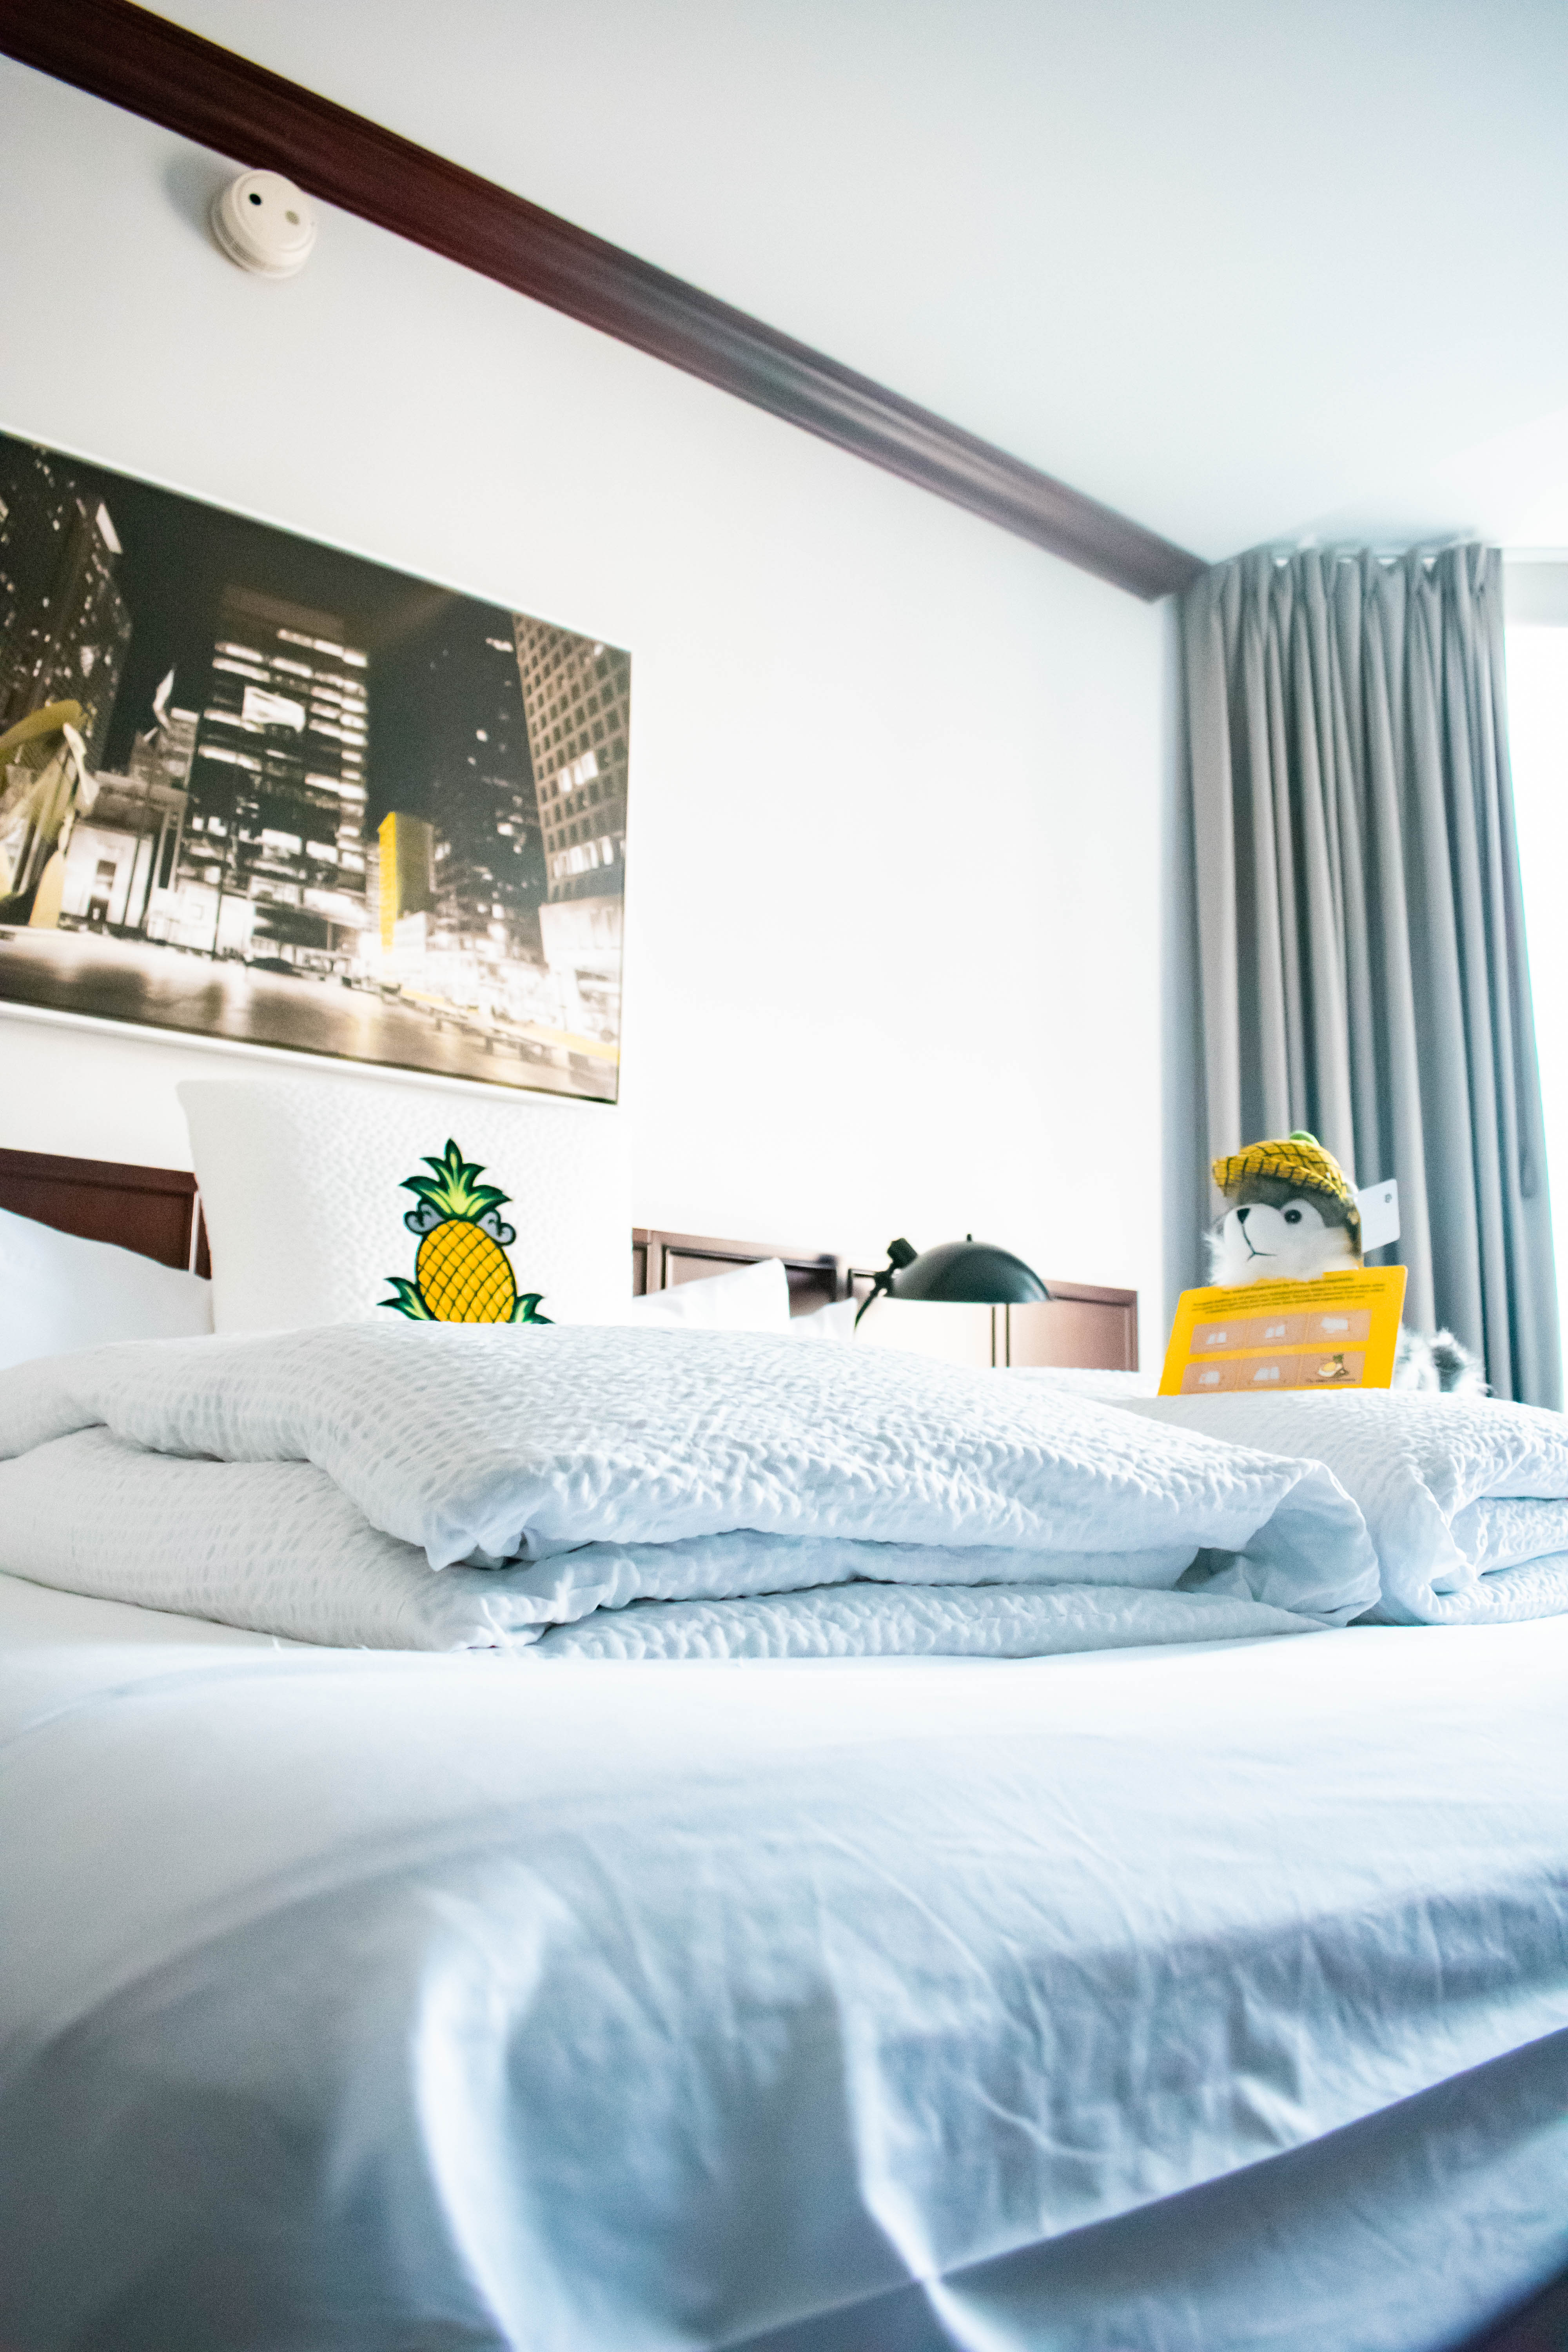 Staypineapple an iconic hotel in the loop chicago queen room bed affordable hotel unique hotel trendy